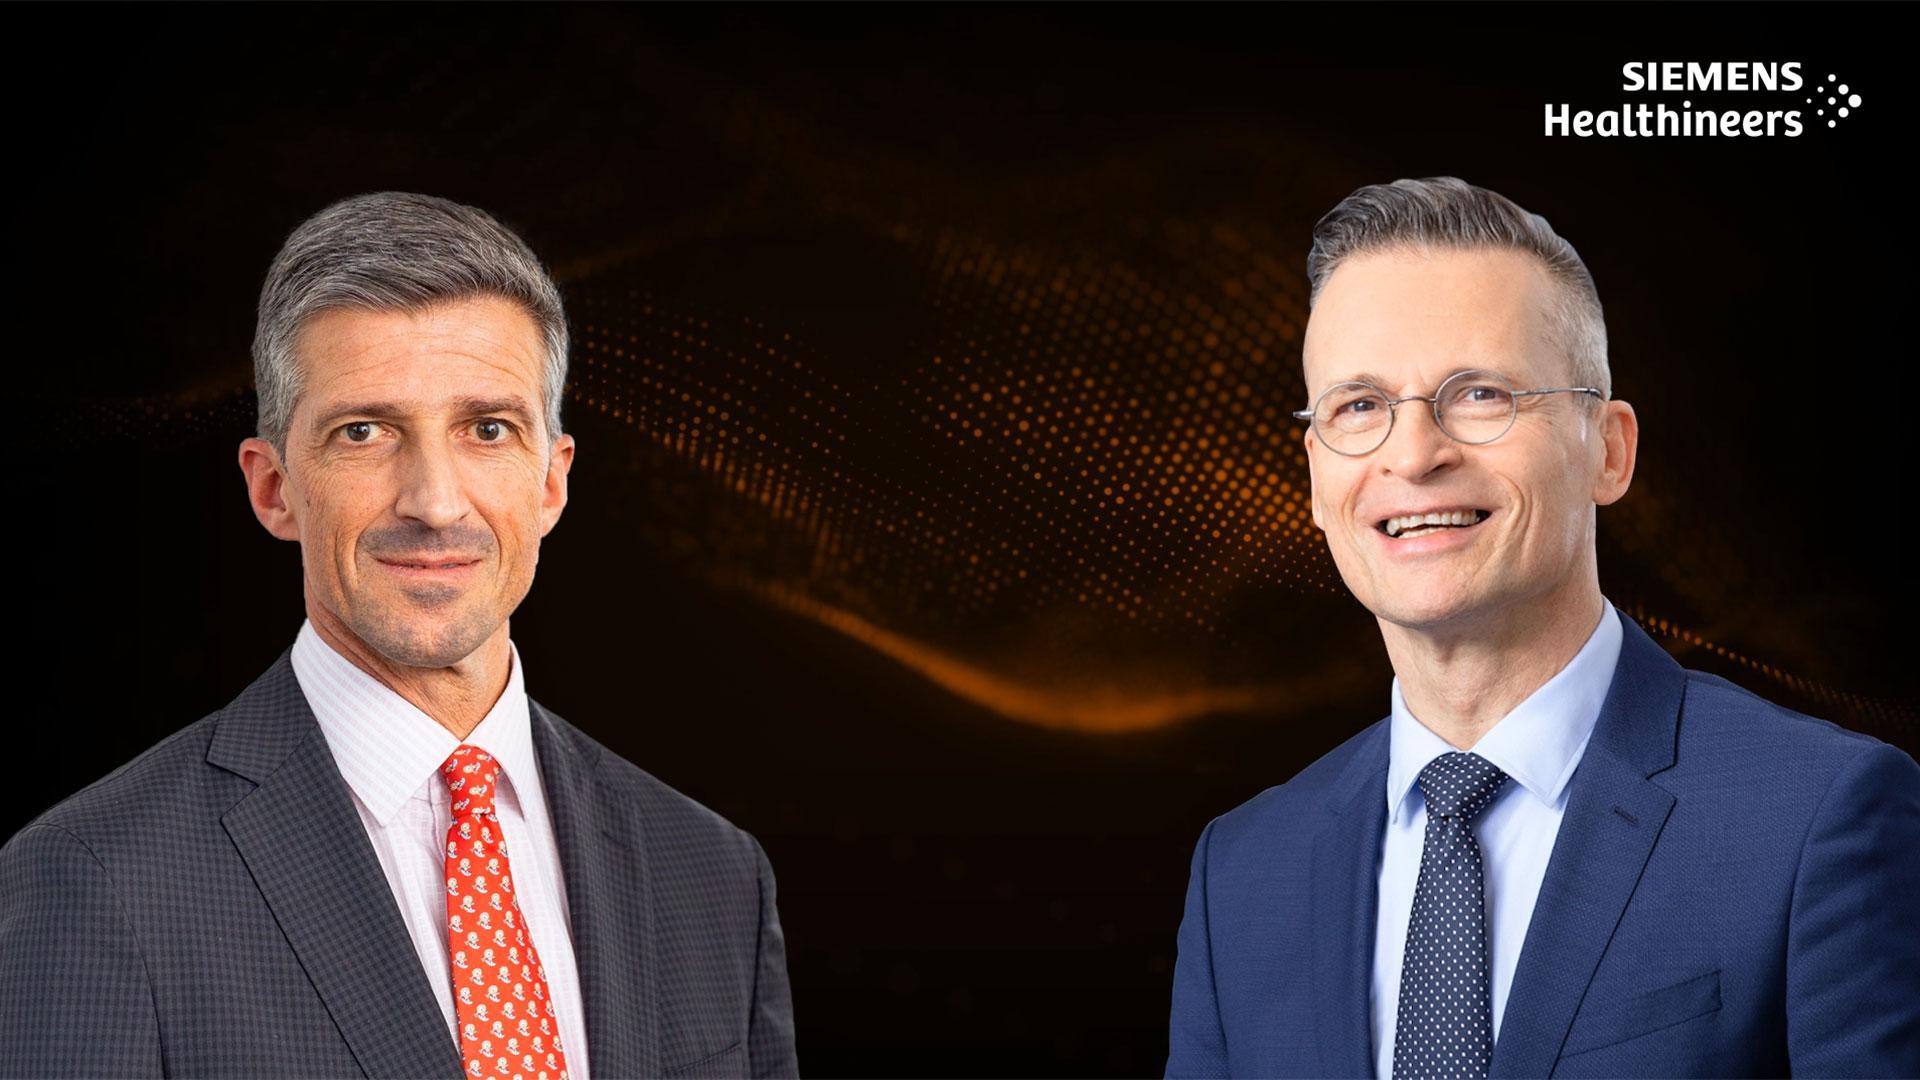 In this podcast, Frederik Wenz (l.) and Christoph Zindel discuss digital and planning strategies that have gained in importance during the crisis